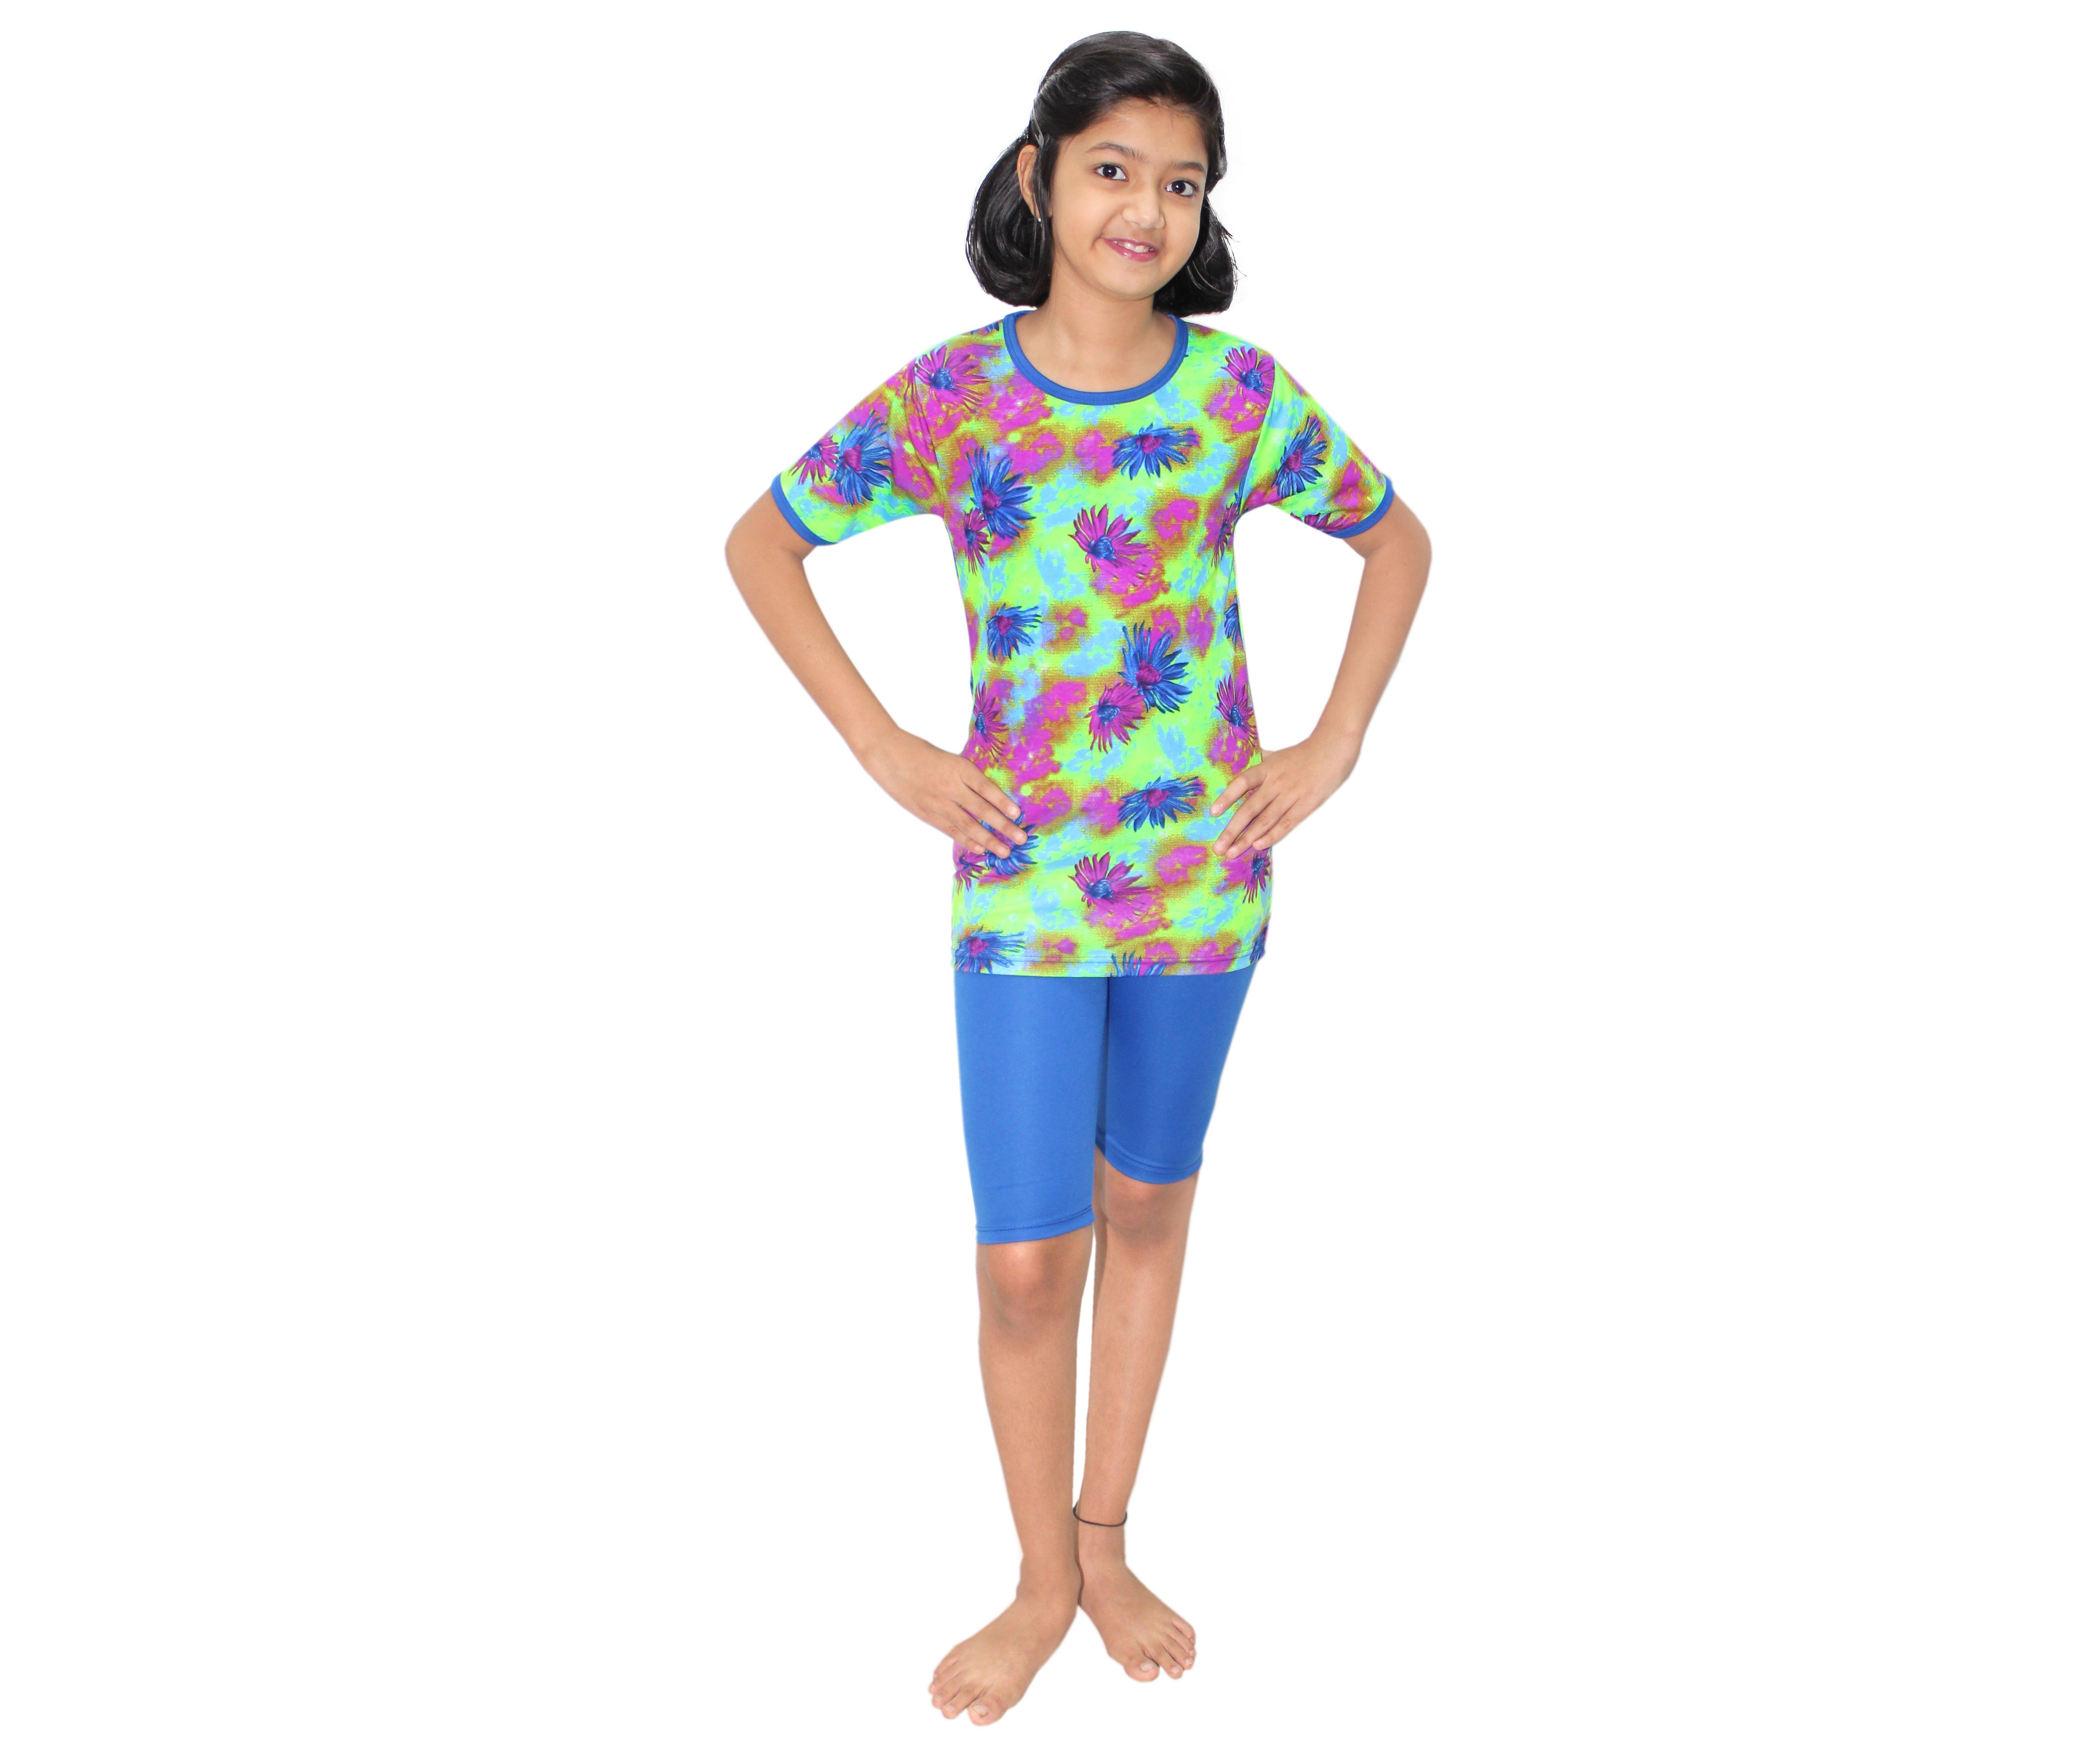 31e4a4ddda1 Goodluck Swimming Costume For Kids, Girls - Buy Goodluck Swimming Costume  For Kids, Girls Online at Low Price - Snapdeal